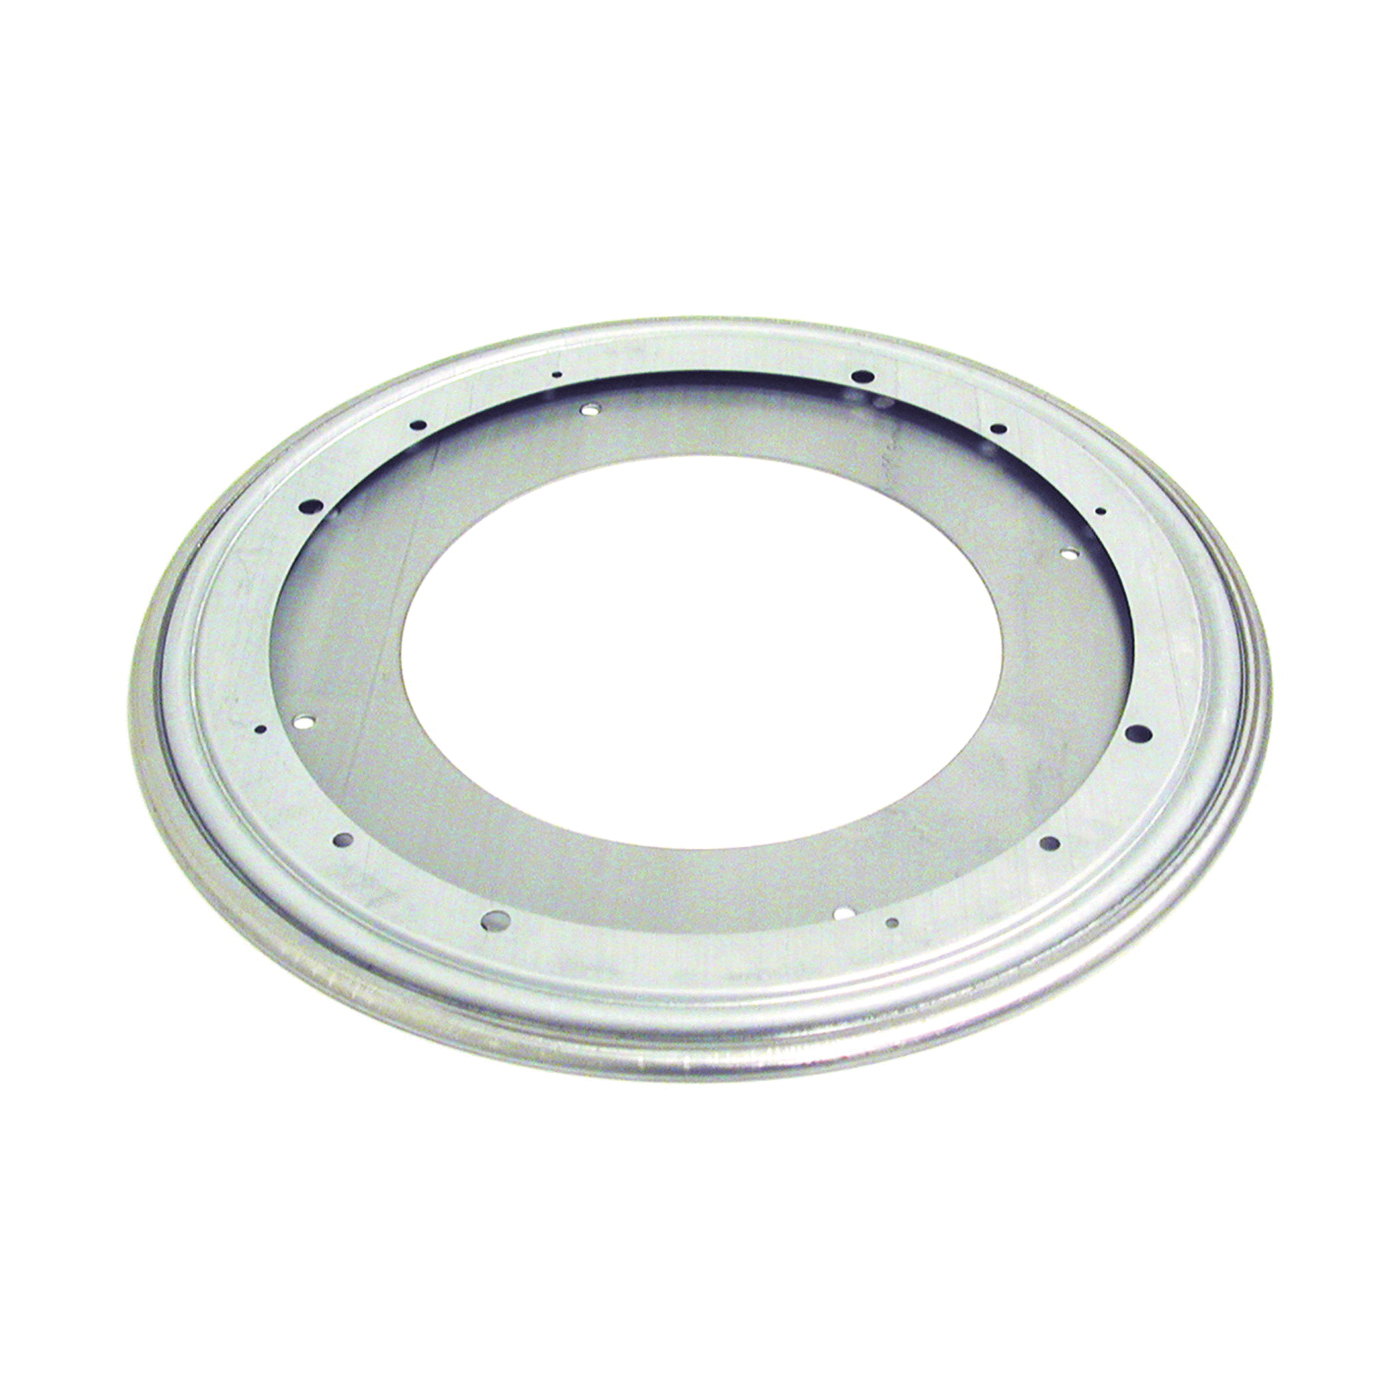 Picture of Shepherd Hardware 9549 Lazy Susan Turntable, 12 in Dia, Zinc